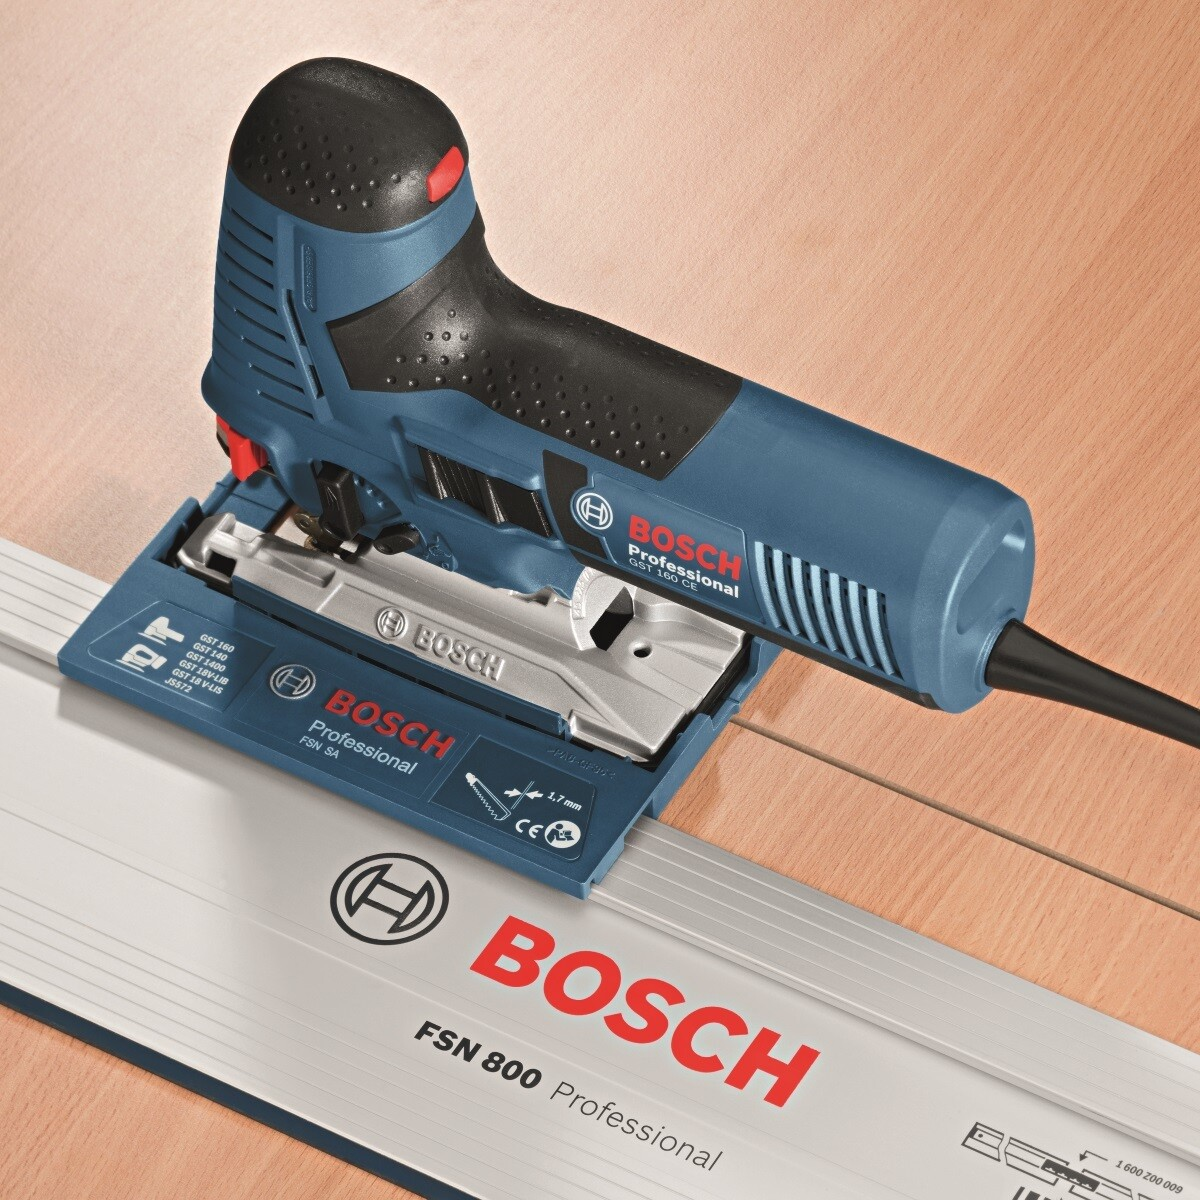 bosch gst 160 ce 160mm professional jigsaw 230v from. Black Bedroom Furniture Sets. Home Design Ideas